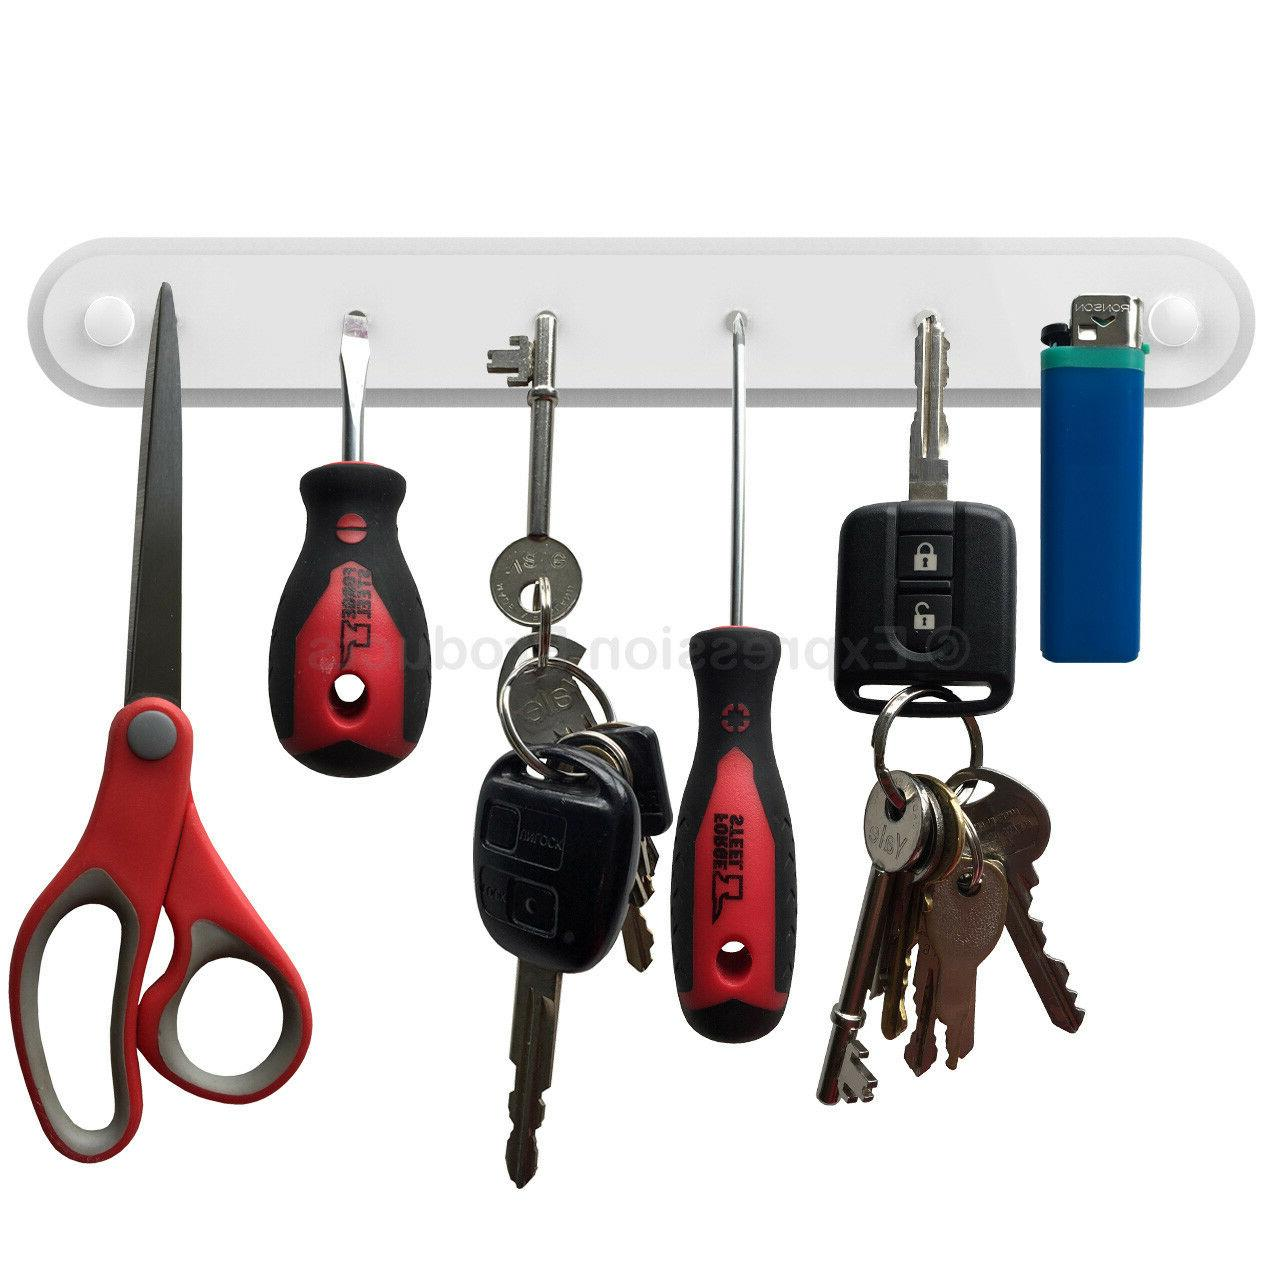 magnetic key holder rack key kitchen utensils